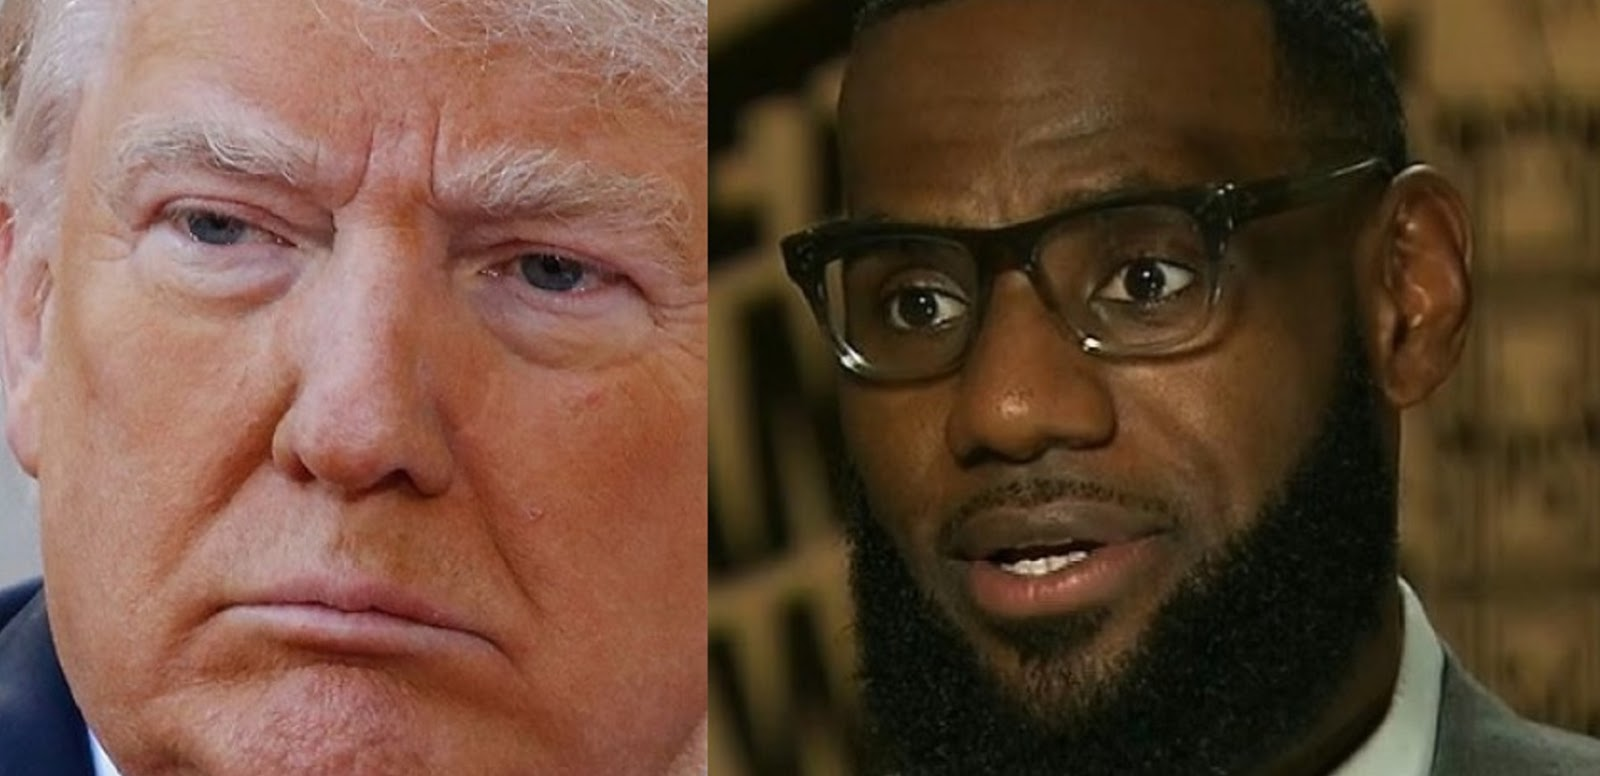 DONALD TRUMP VS. LEBRON JAMES